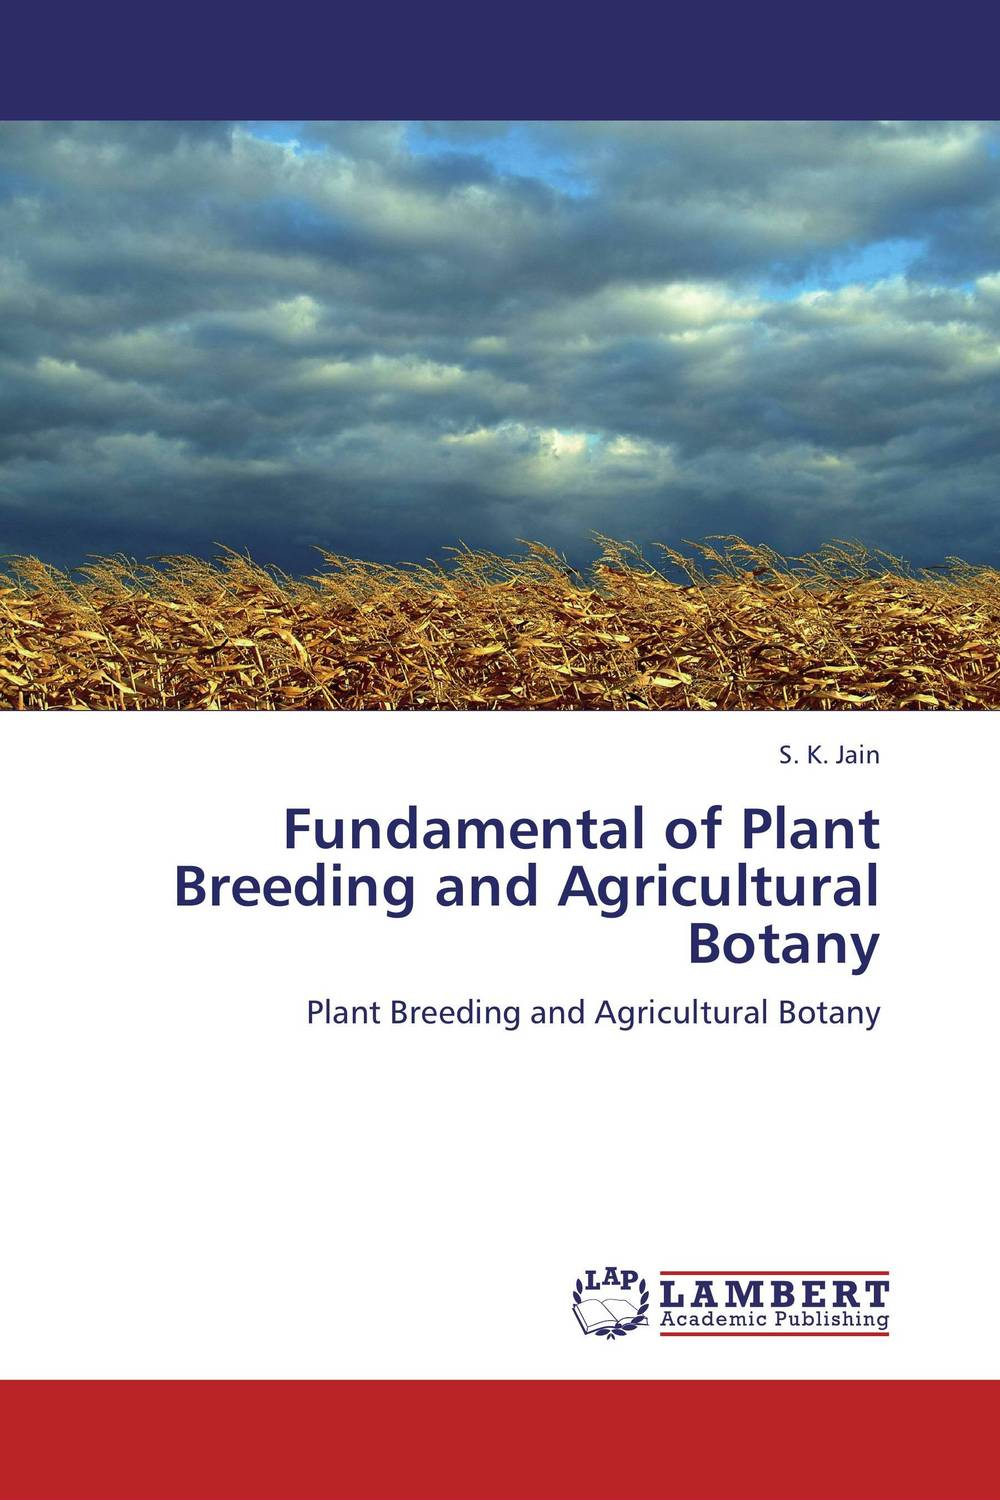 Fundamental of Plant Breeding and Agricultural Botany bottlegourd breeding